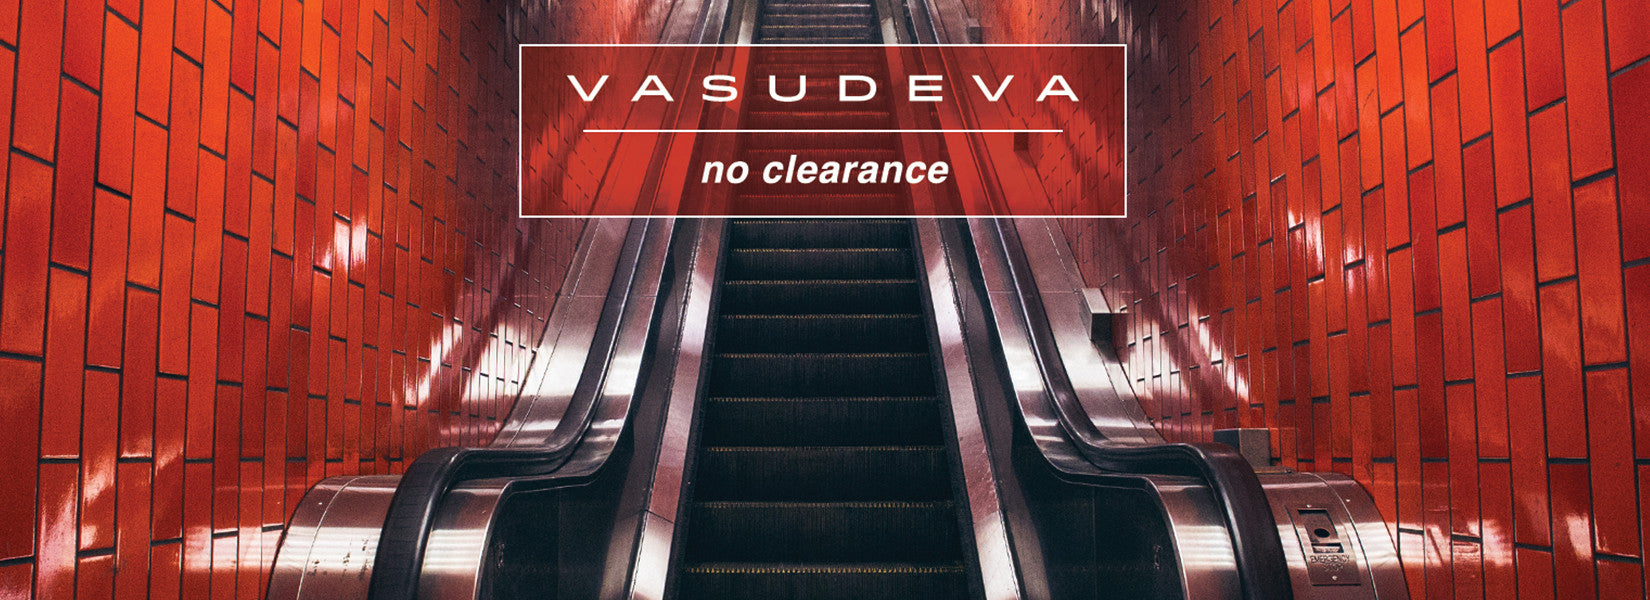 Vasudeva's New Album 'No Clearance' Out Now